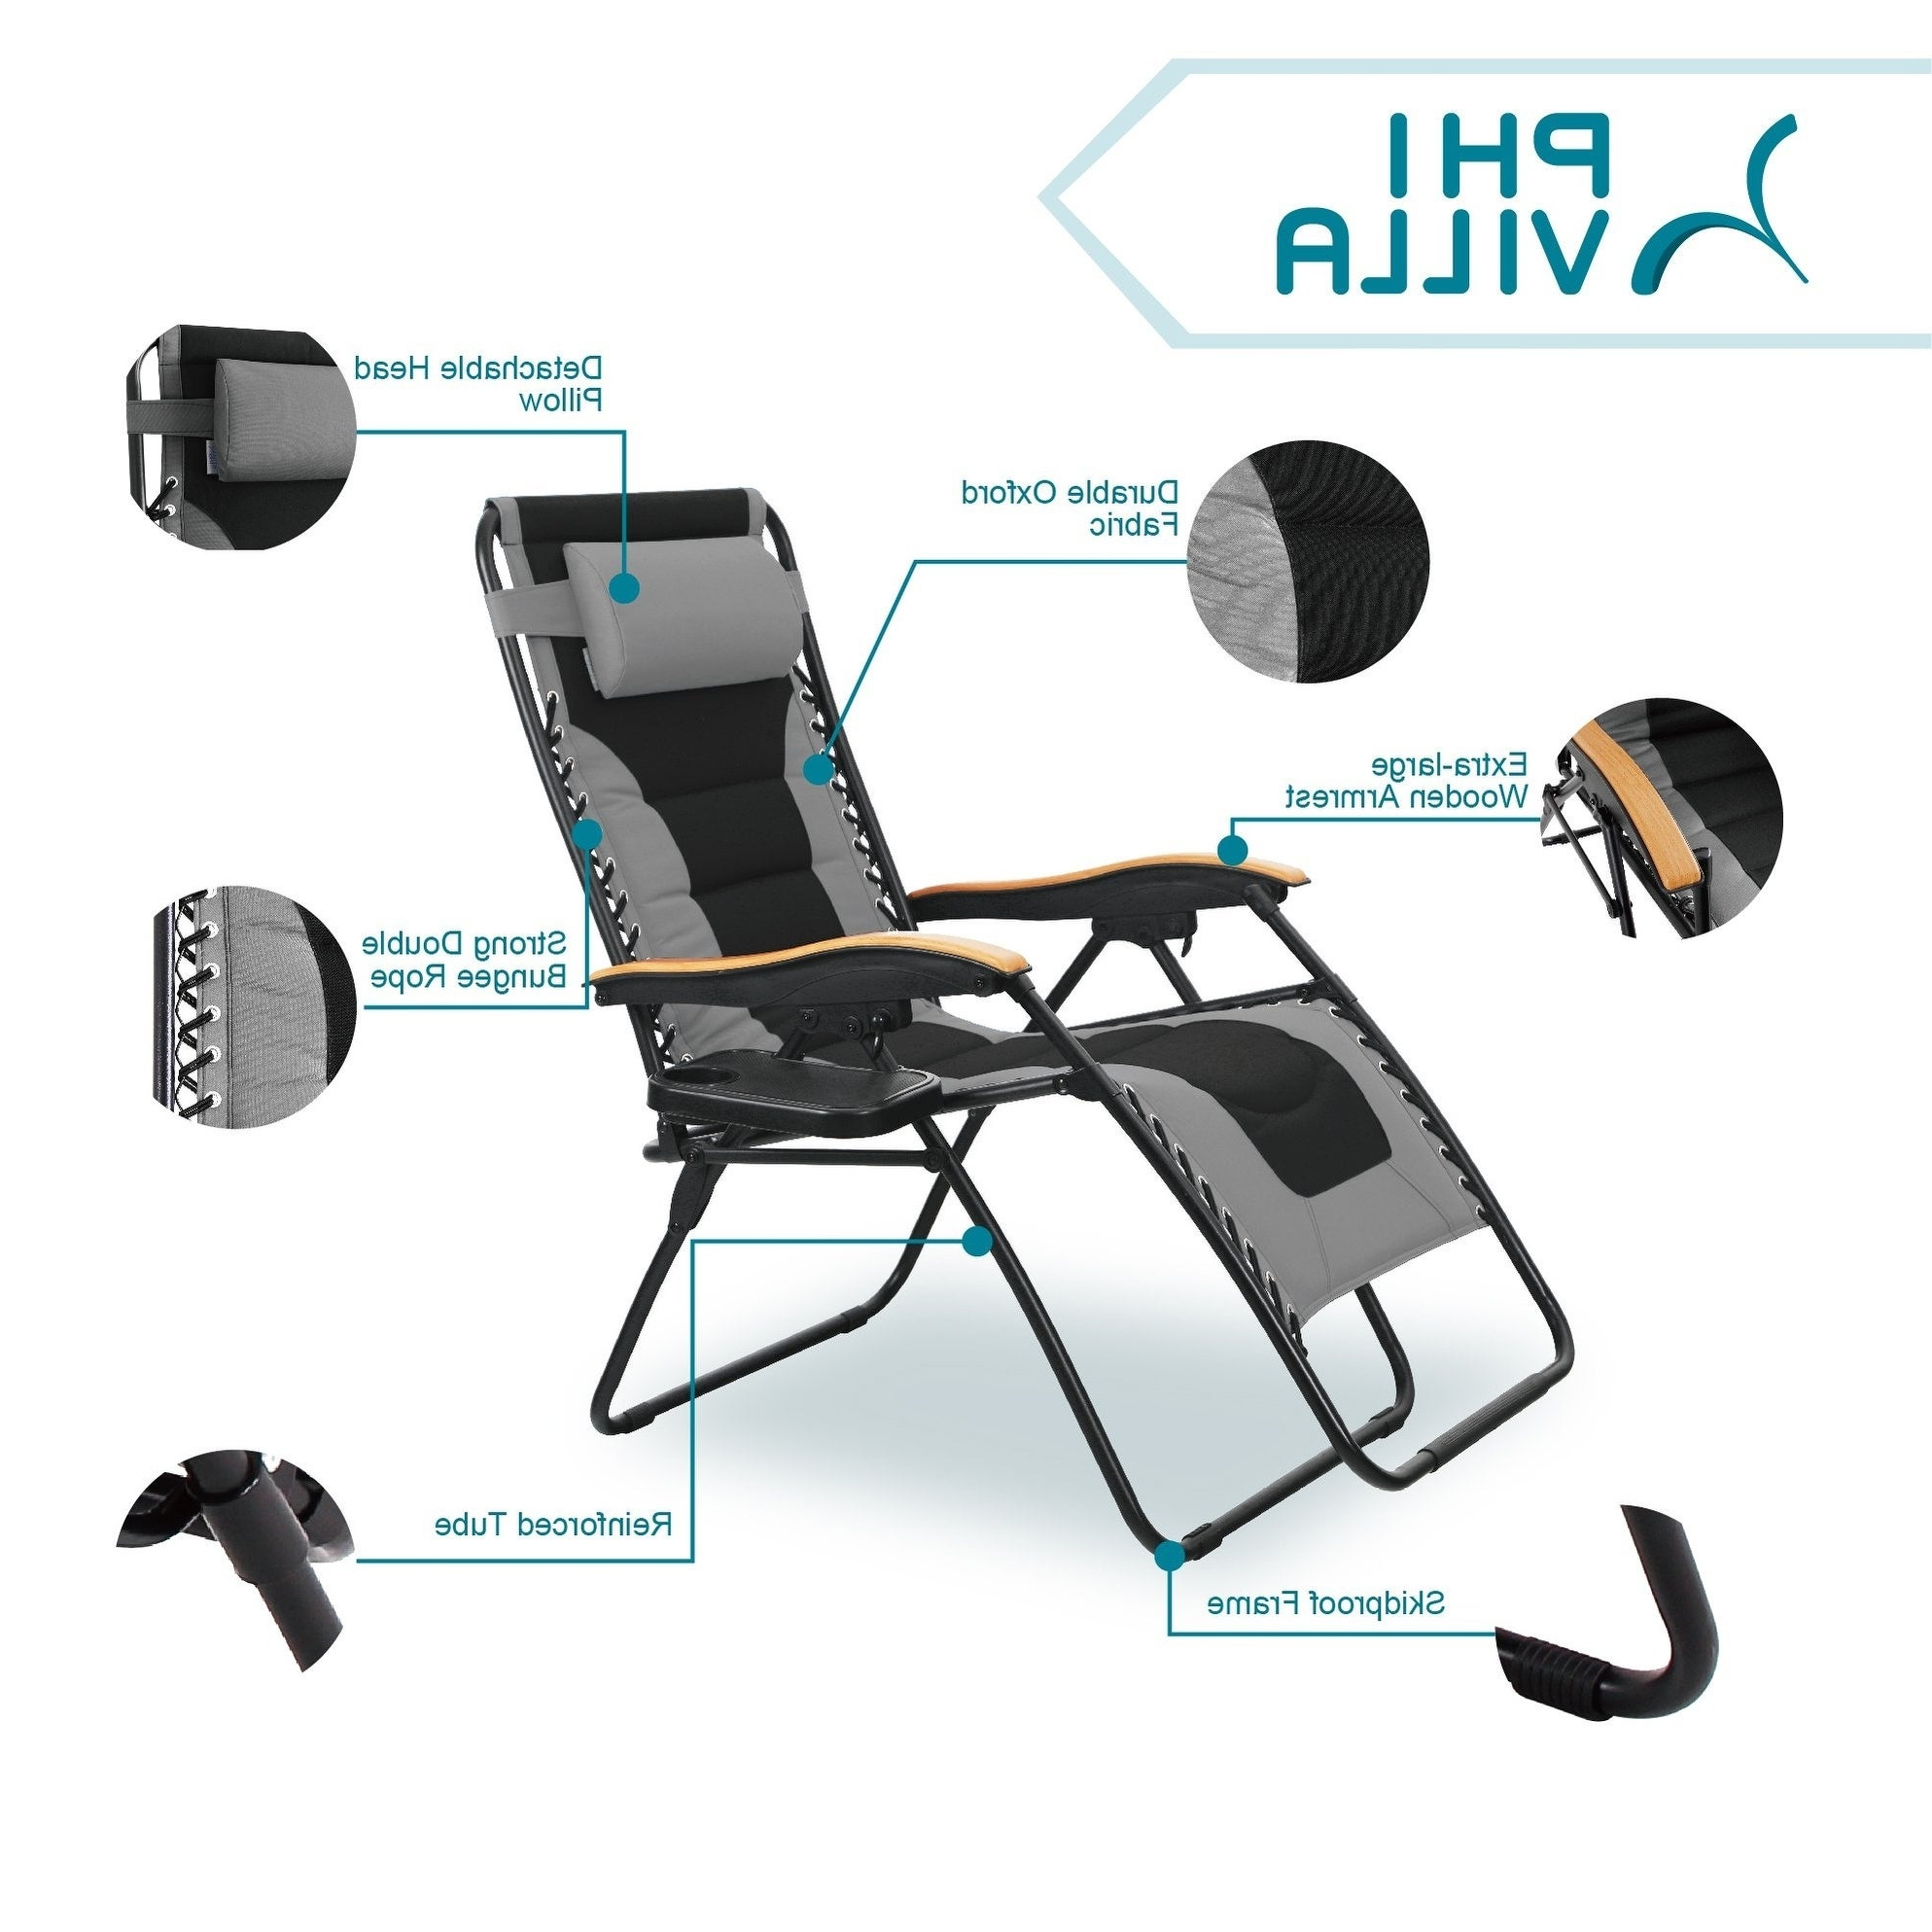 Oversize Wider Armrest Padded Lounge Chairs Intended For 2019 Phi Villa Oversize Xl Padded Zero Gravity Lounge Chair Wider Armrest Adjustable Recliner With Cup Holder, Support 350 Lbs – N/a (View 2 of 25)